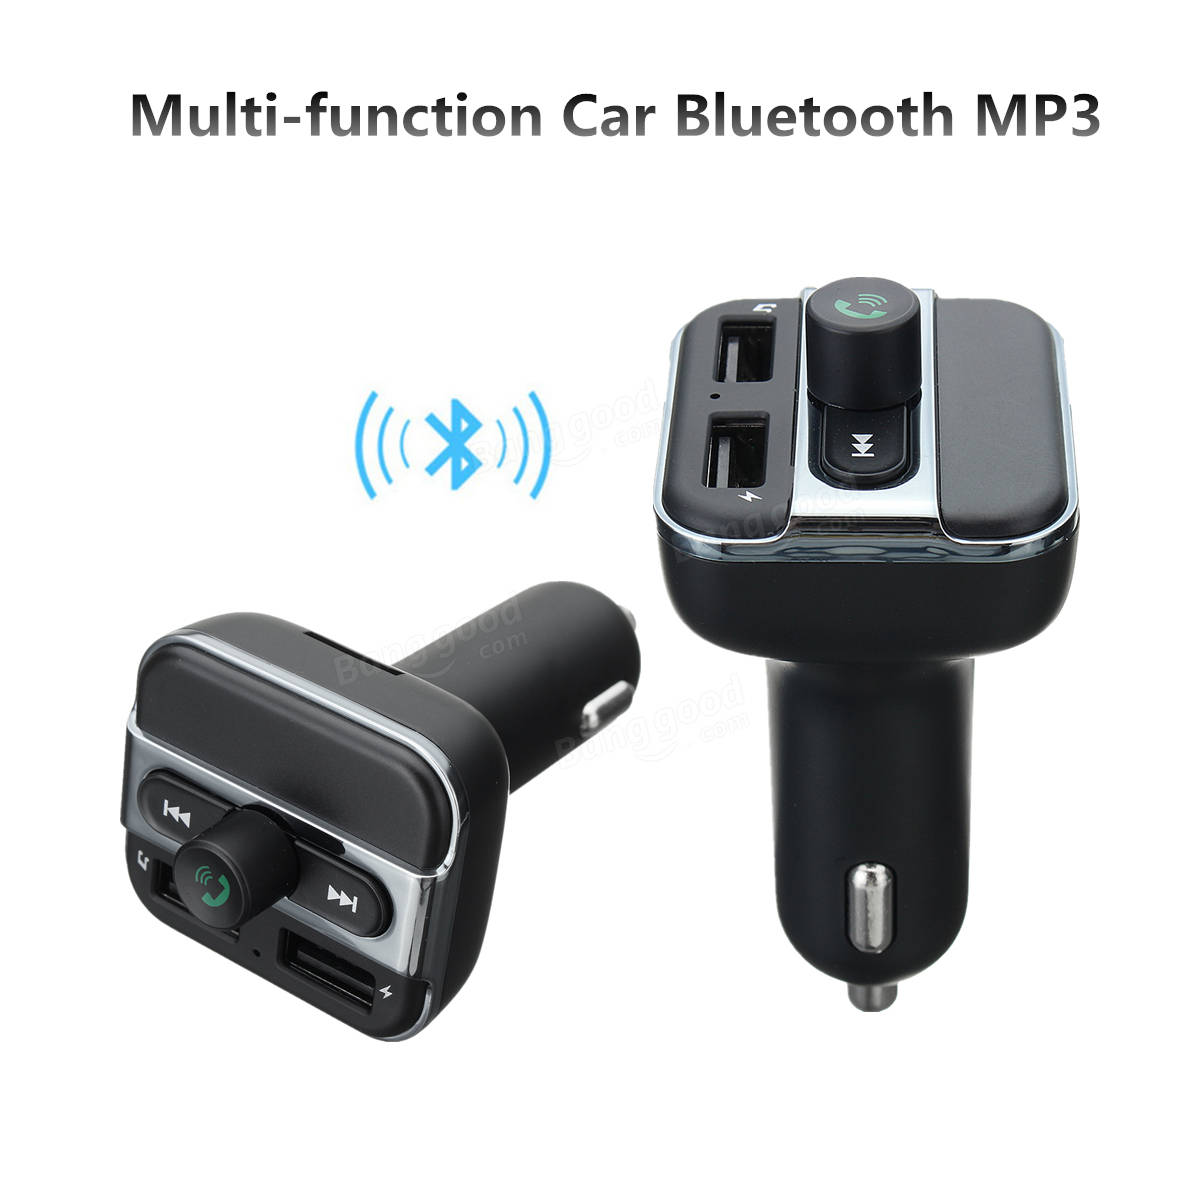 Kit Bluetooth Manos Libres Bluetooth Manos Libres Inalámbricas Fm Transimittervs